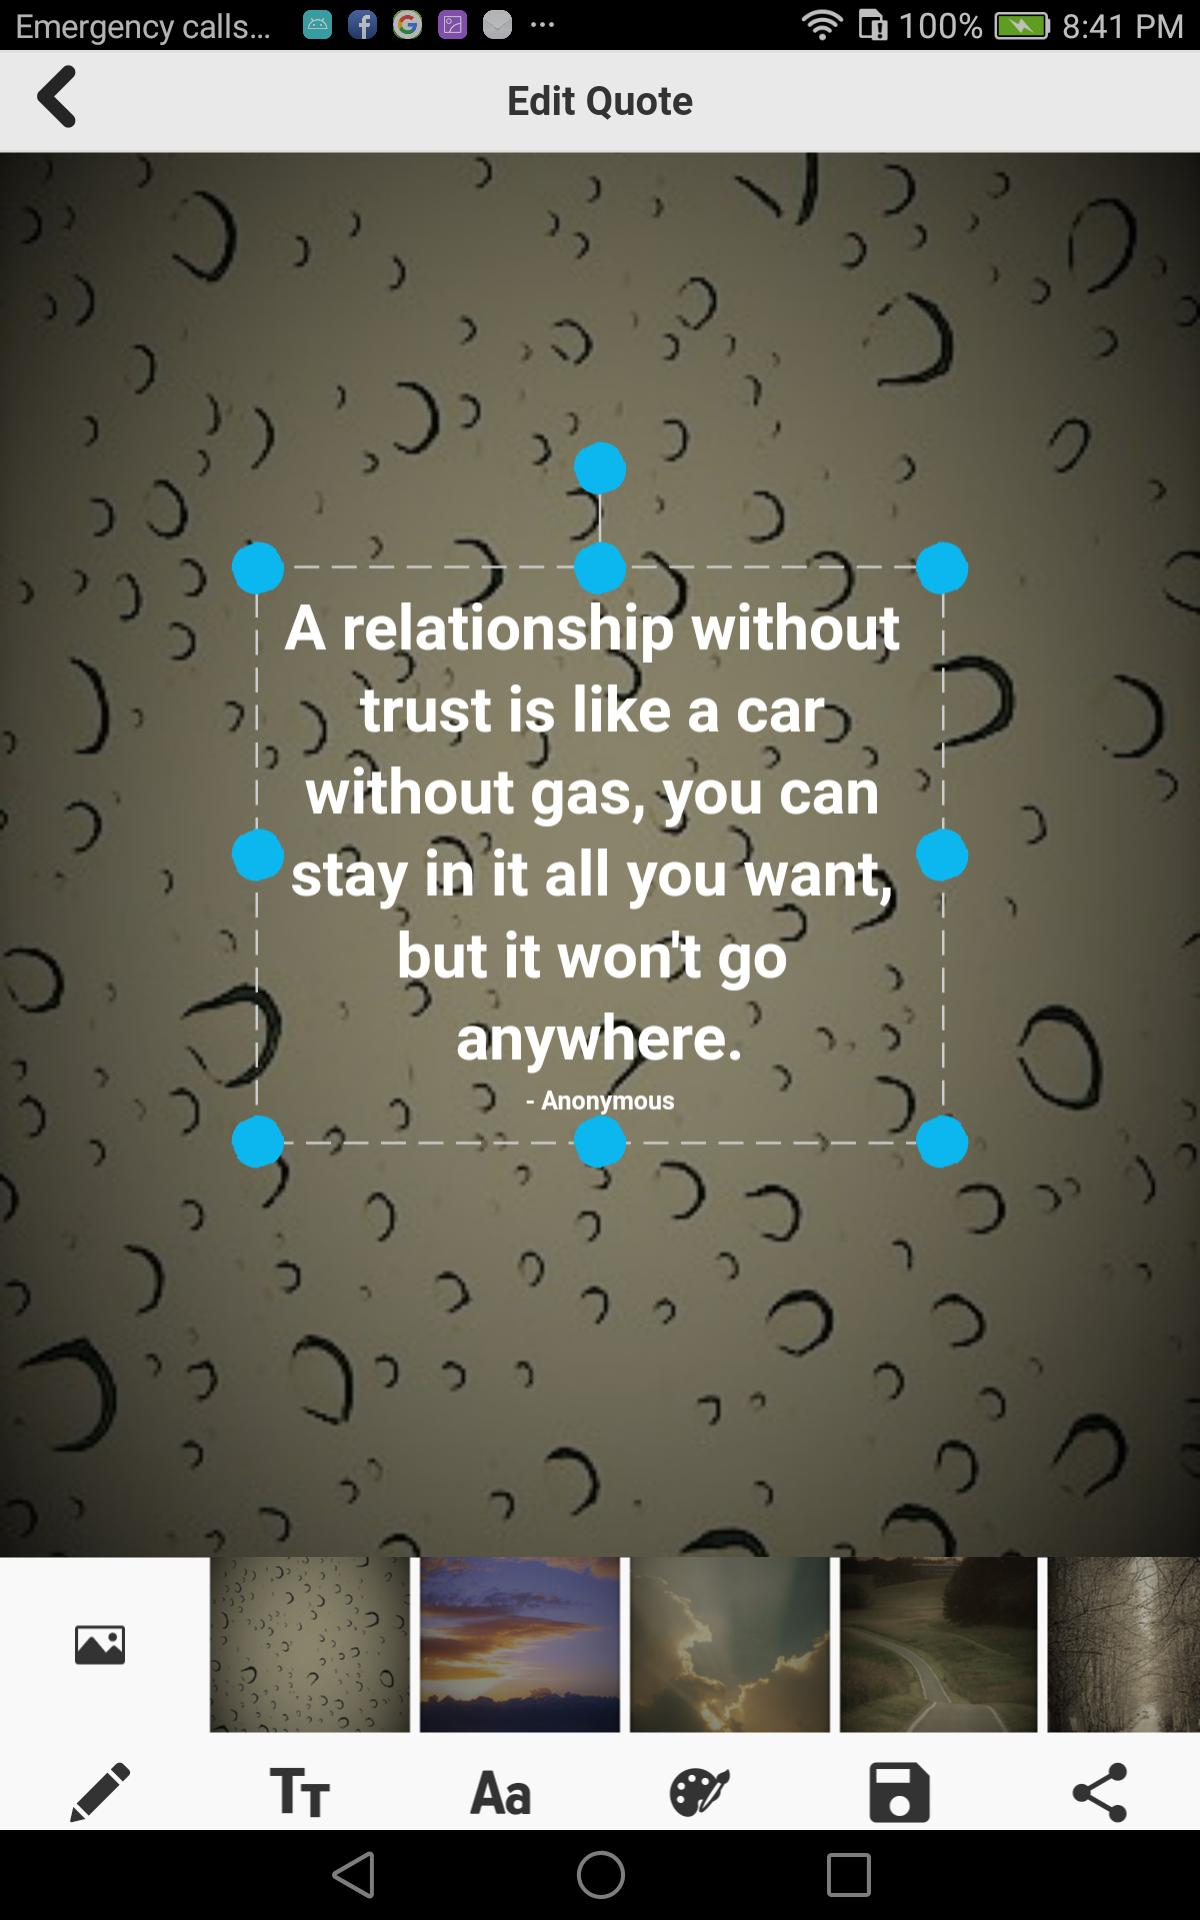 Bad Relationship Quotes for Android - APK Download